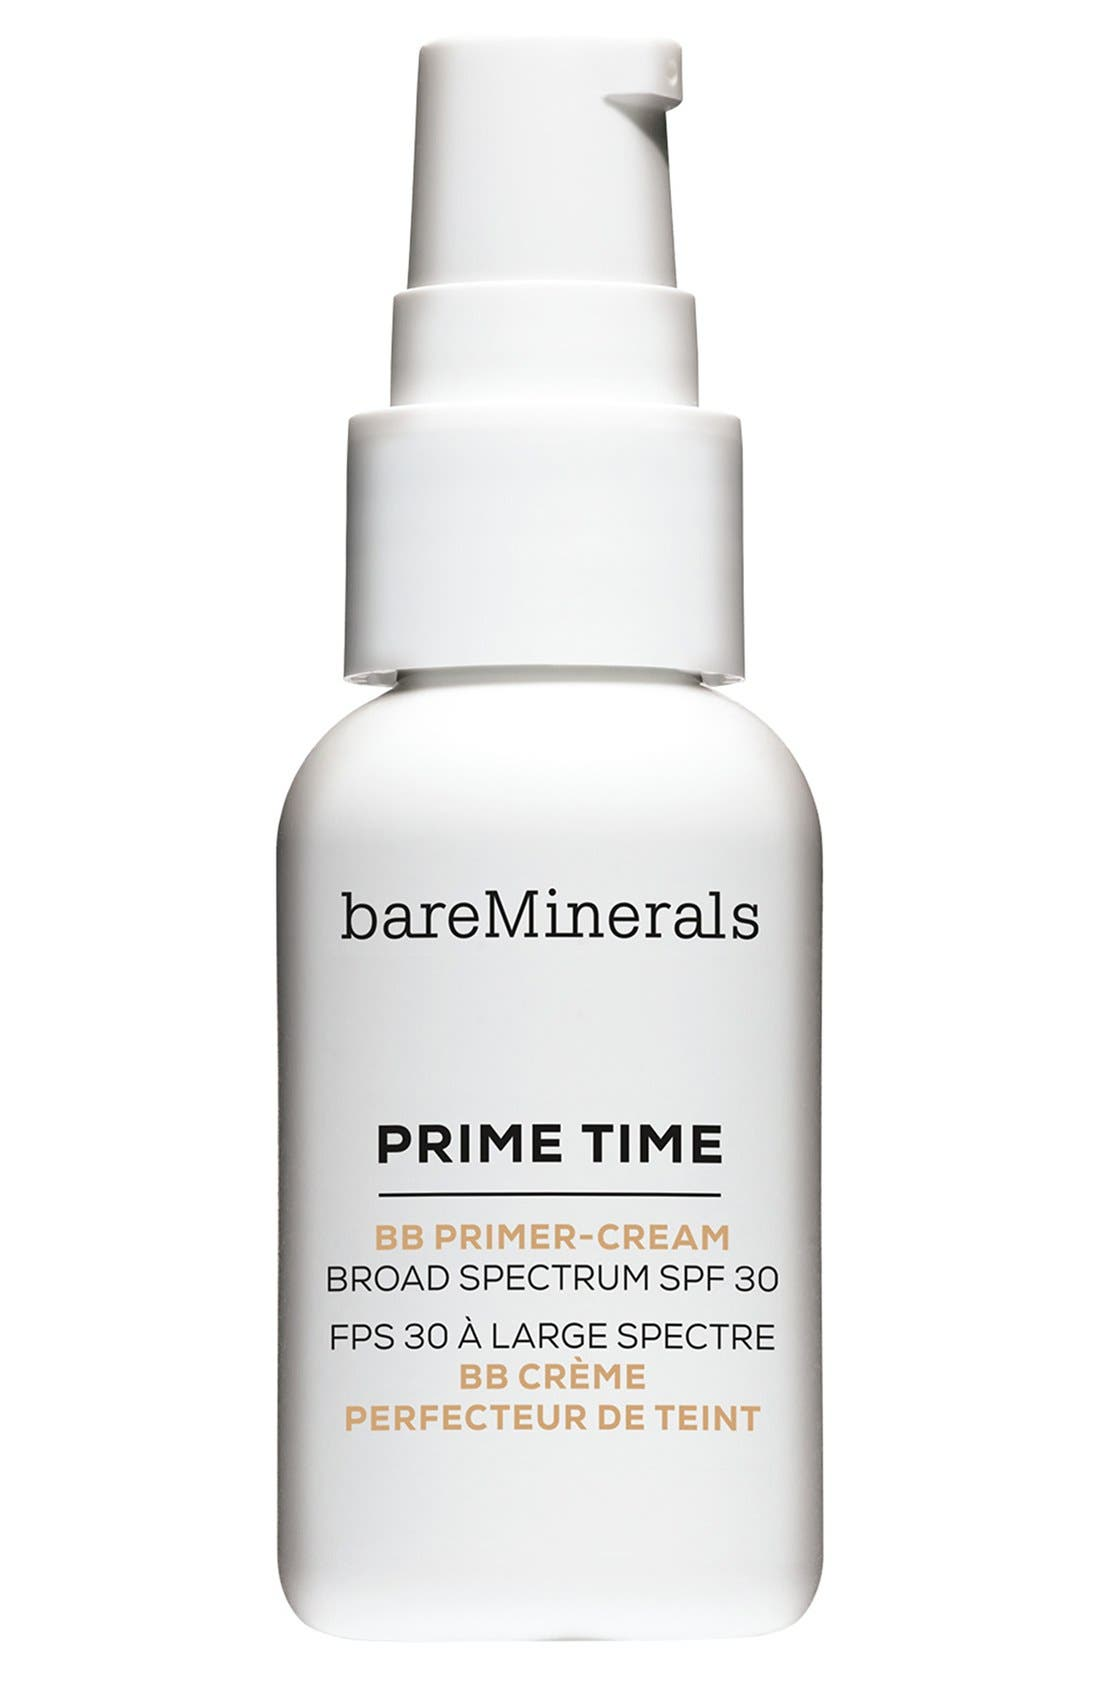 bareMinerals® Prime Time BB Primer-Cream Broad Spectrum SPF 30